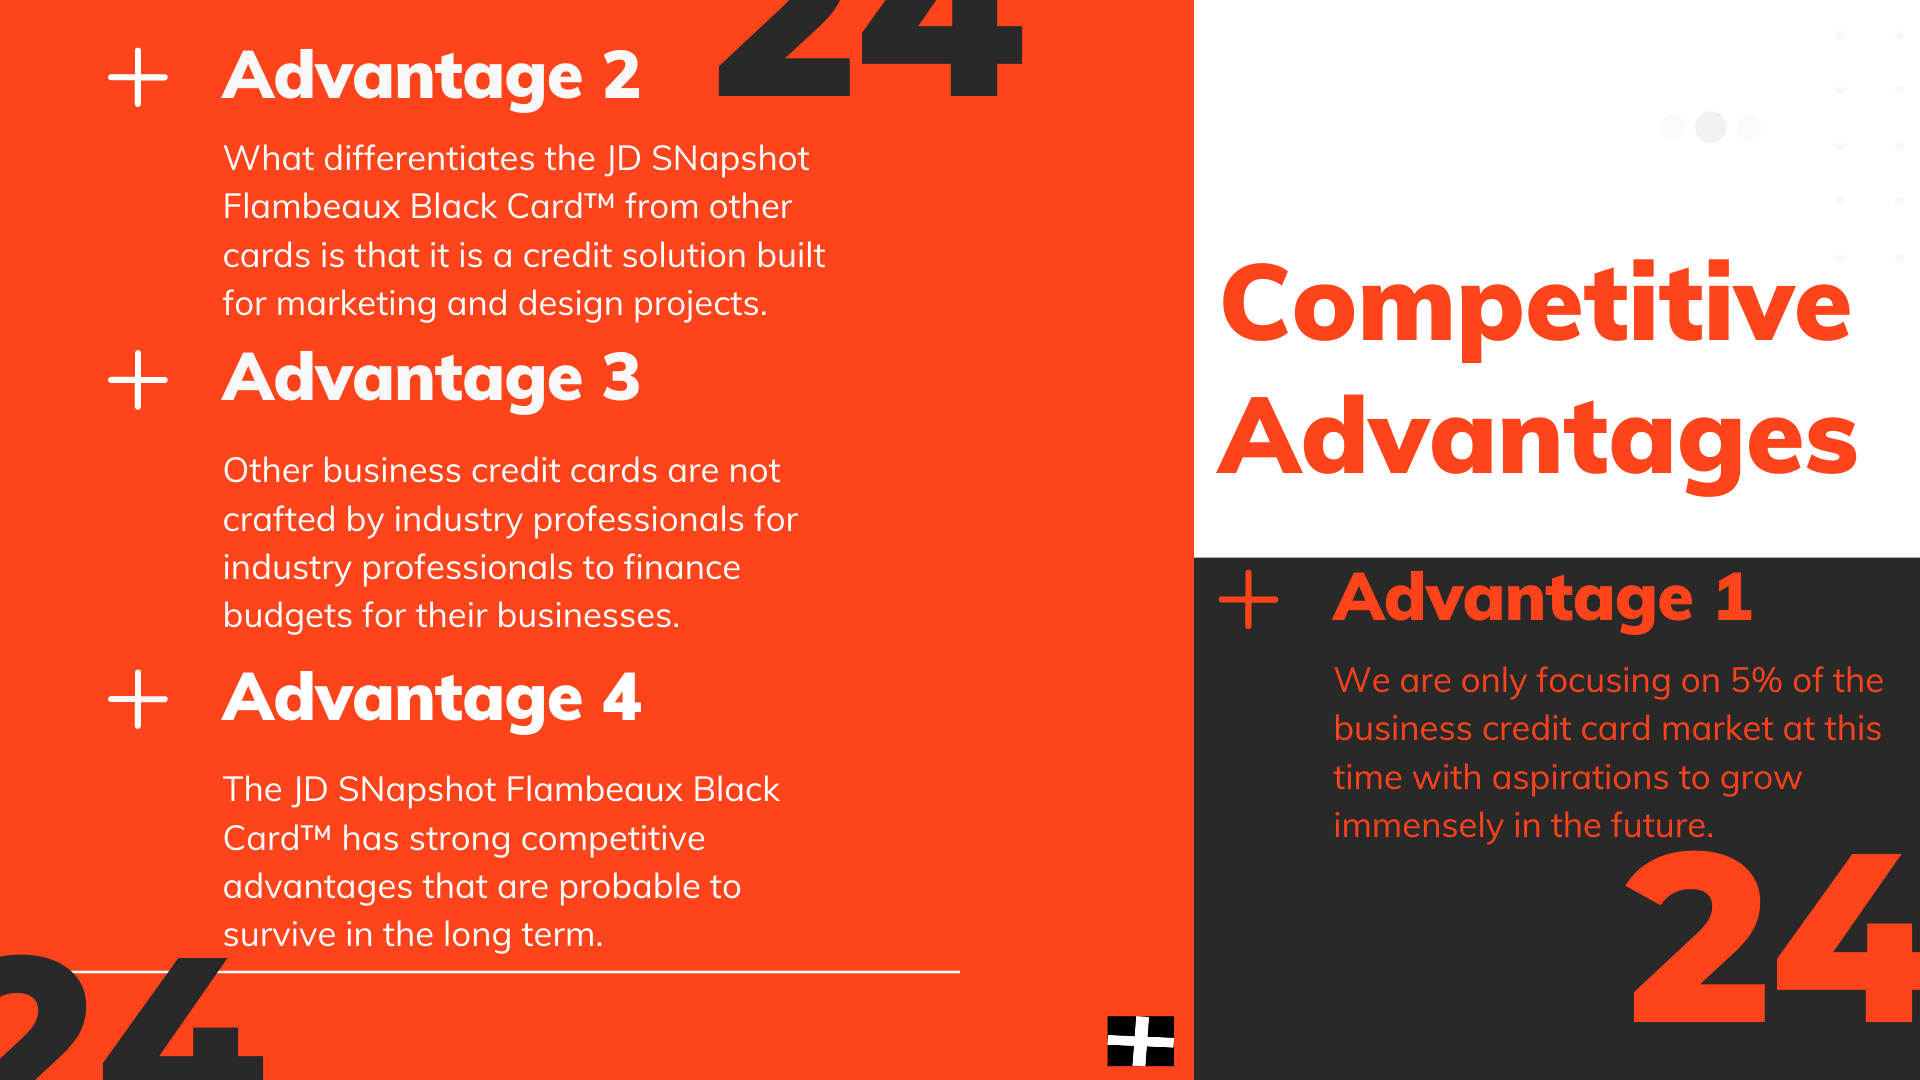 Competitive Advantages | Advantage 1 - We are only focusing on 5% of the business credit card market at this time with aspirations to grow immensely in the future. | Advantage 2 - What differentiates the JD Snapshot Flambeaux Black Card™ from other cards is that it is a credit solution built for marketing and design projects. | Advantage 3 - Other business credit cards are not crafted by industry professionals for industry professionals to finance budgets for their businesses. | Advantage 4 - The JD SNapshot Flambeaux Black Card™ has strong competitive advantages that are probable to survive in the long term.